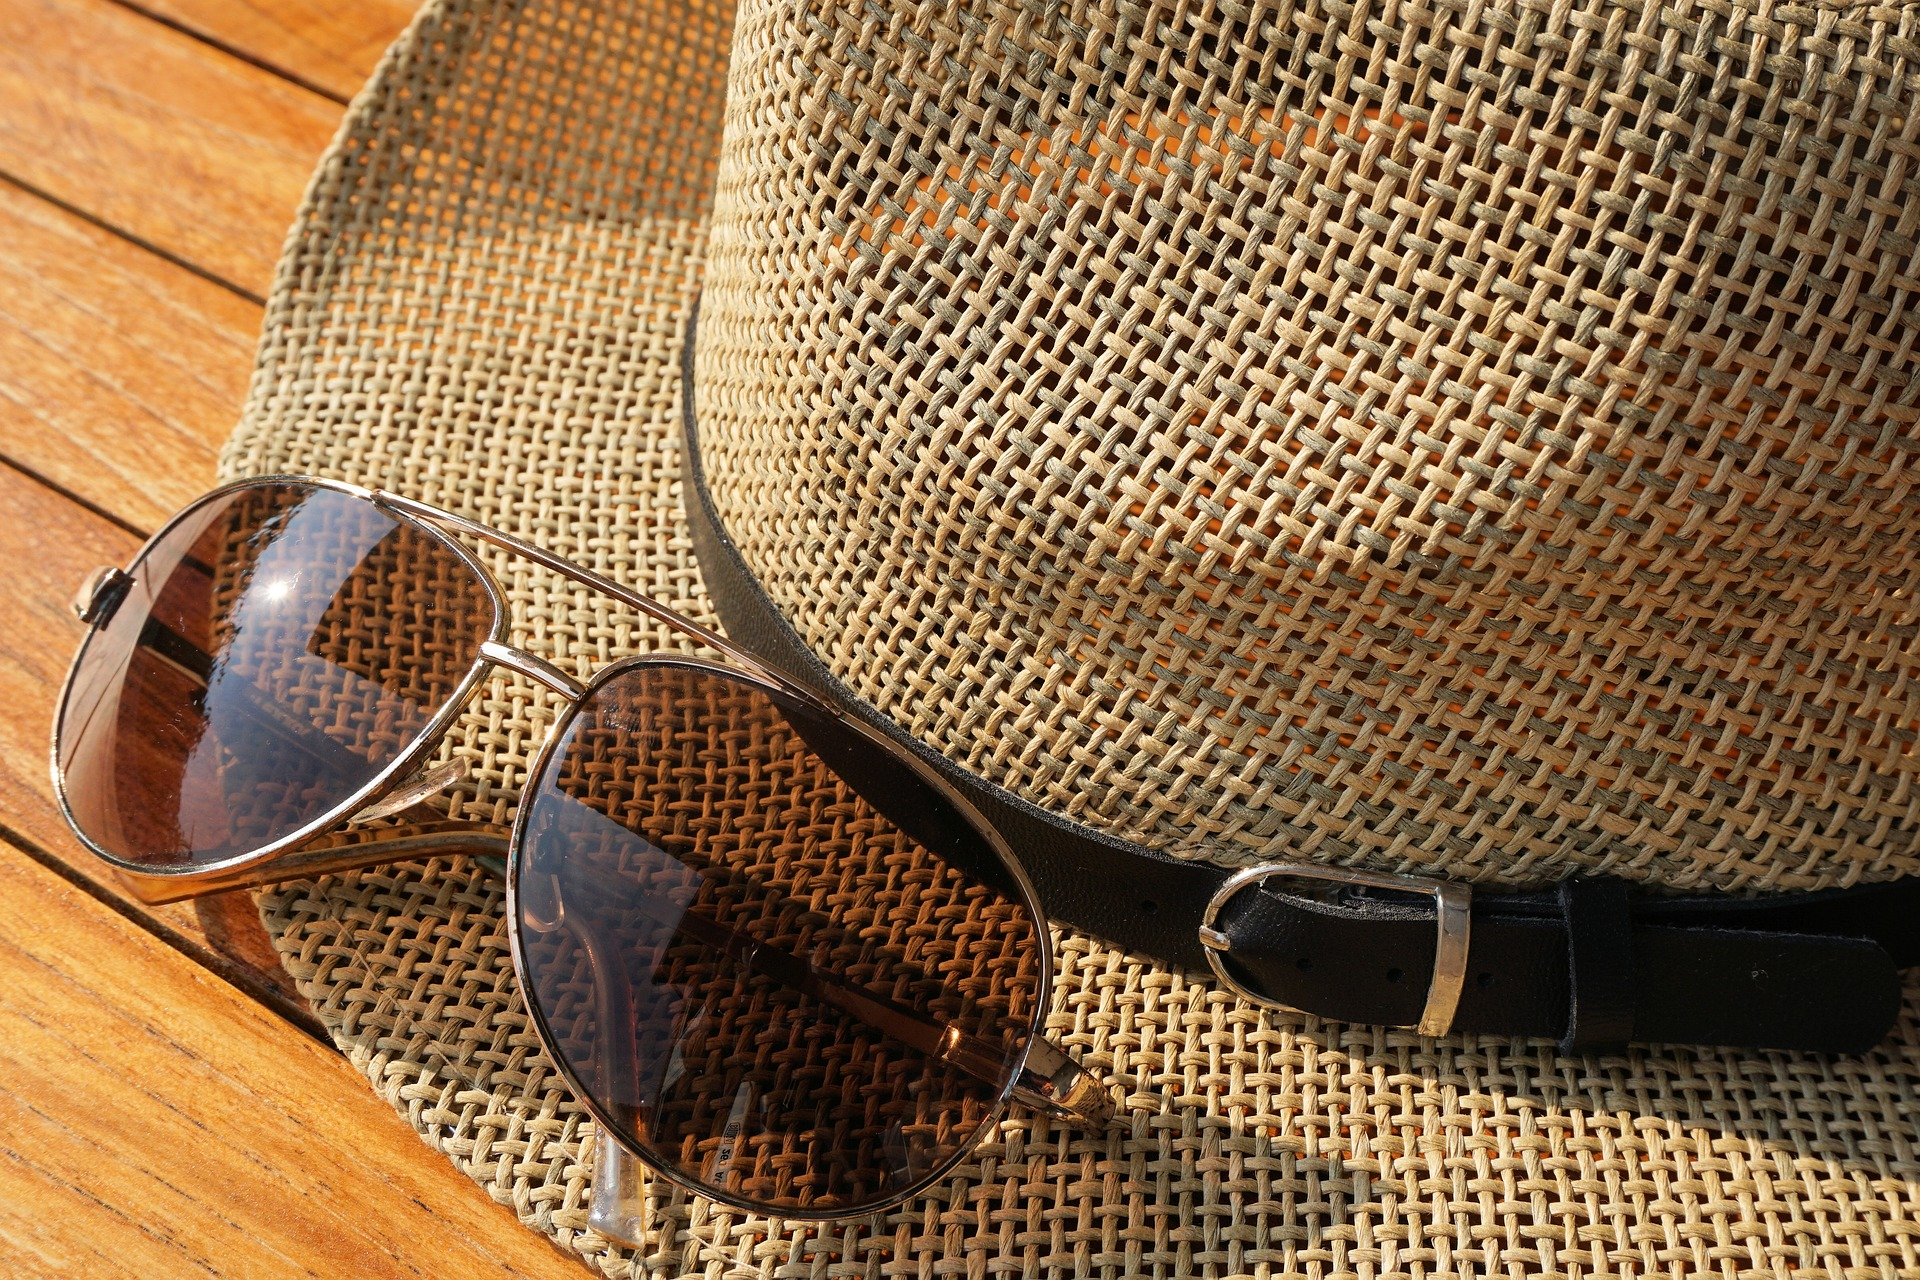 A pair of sunglasses and a woven hat